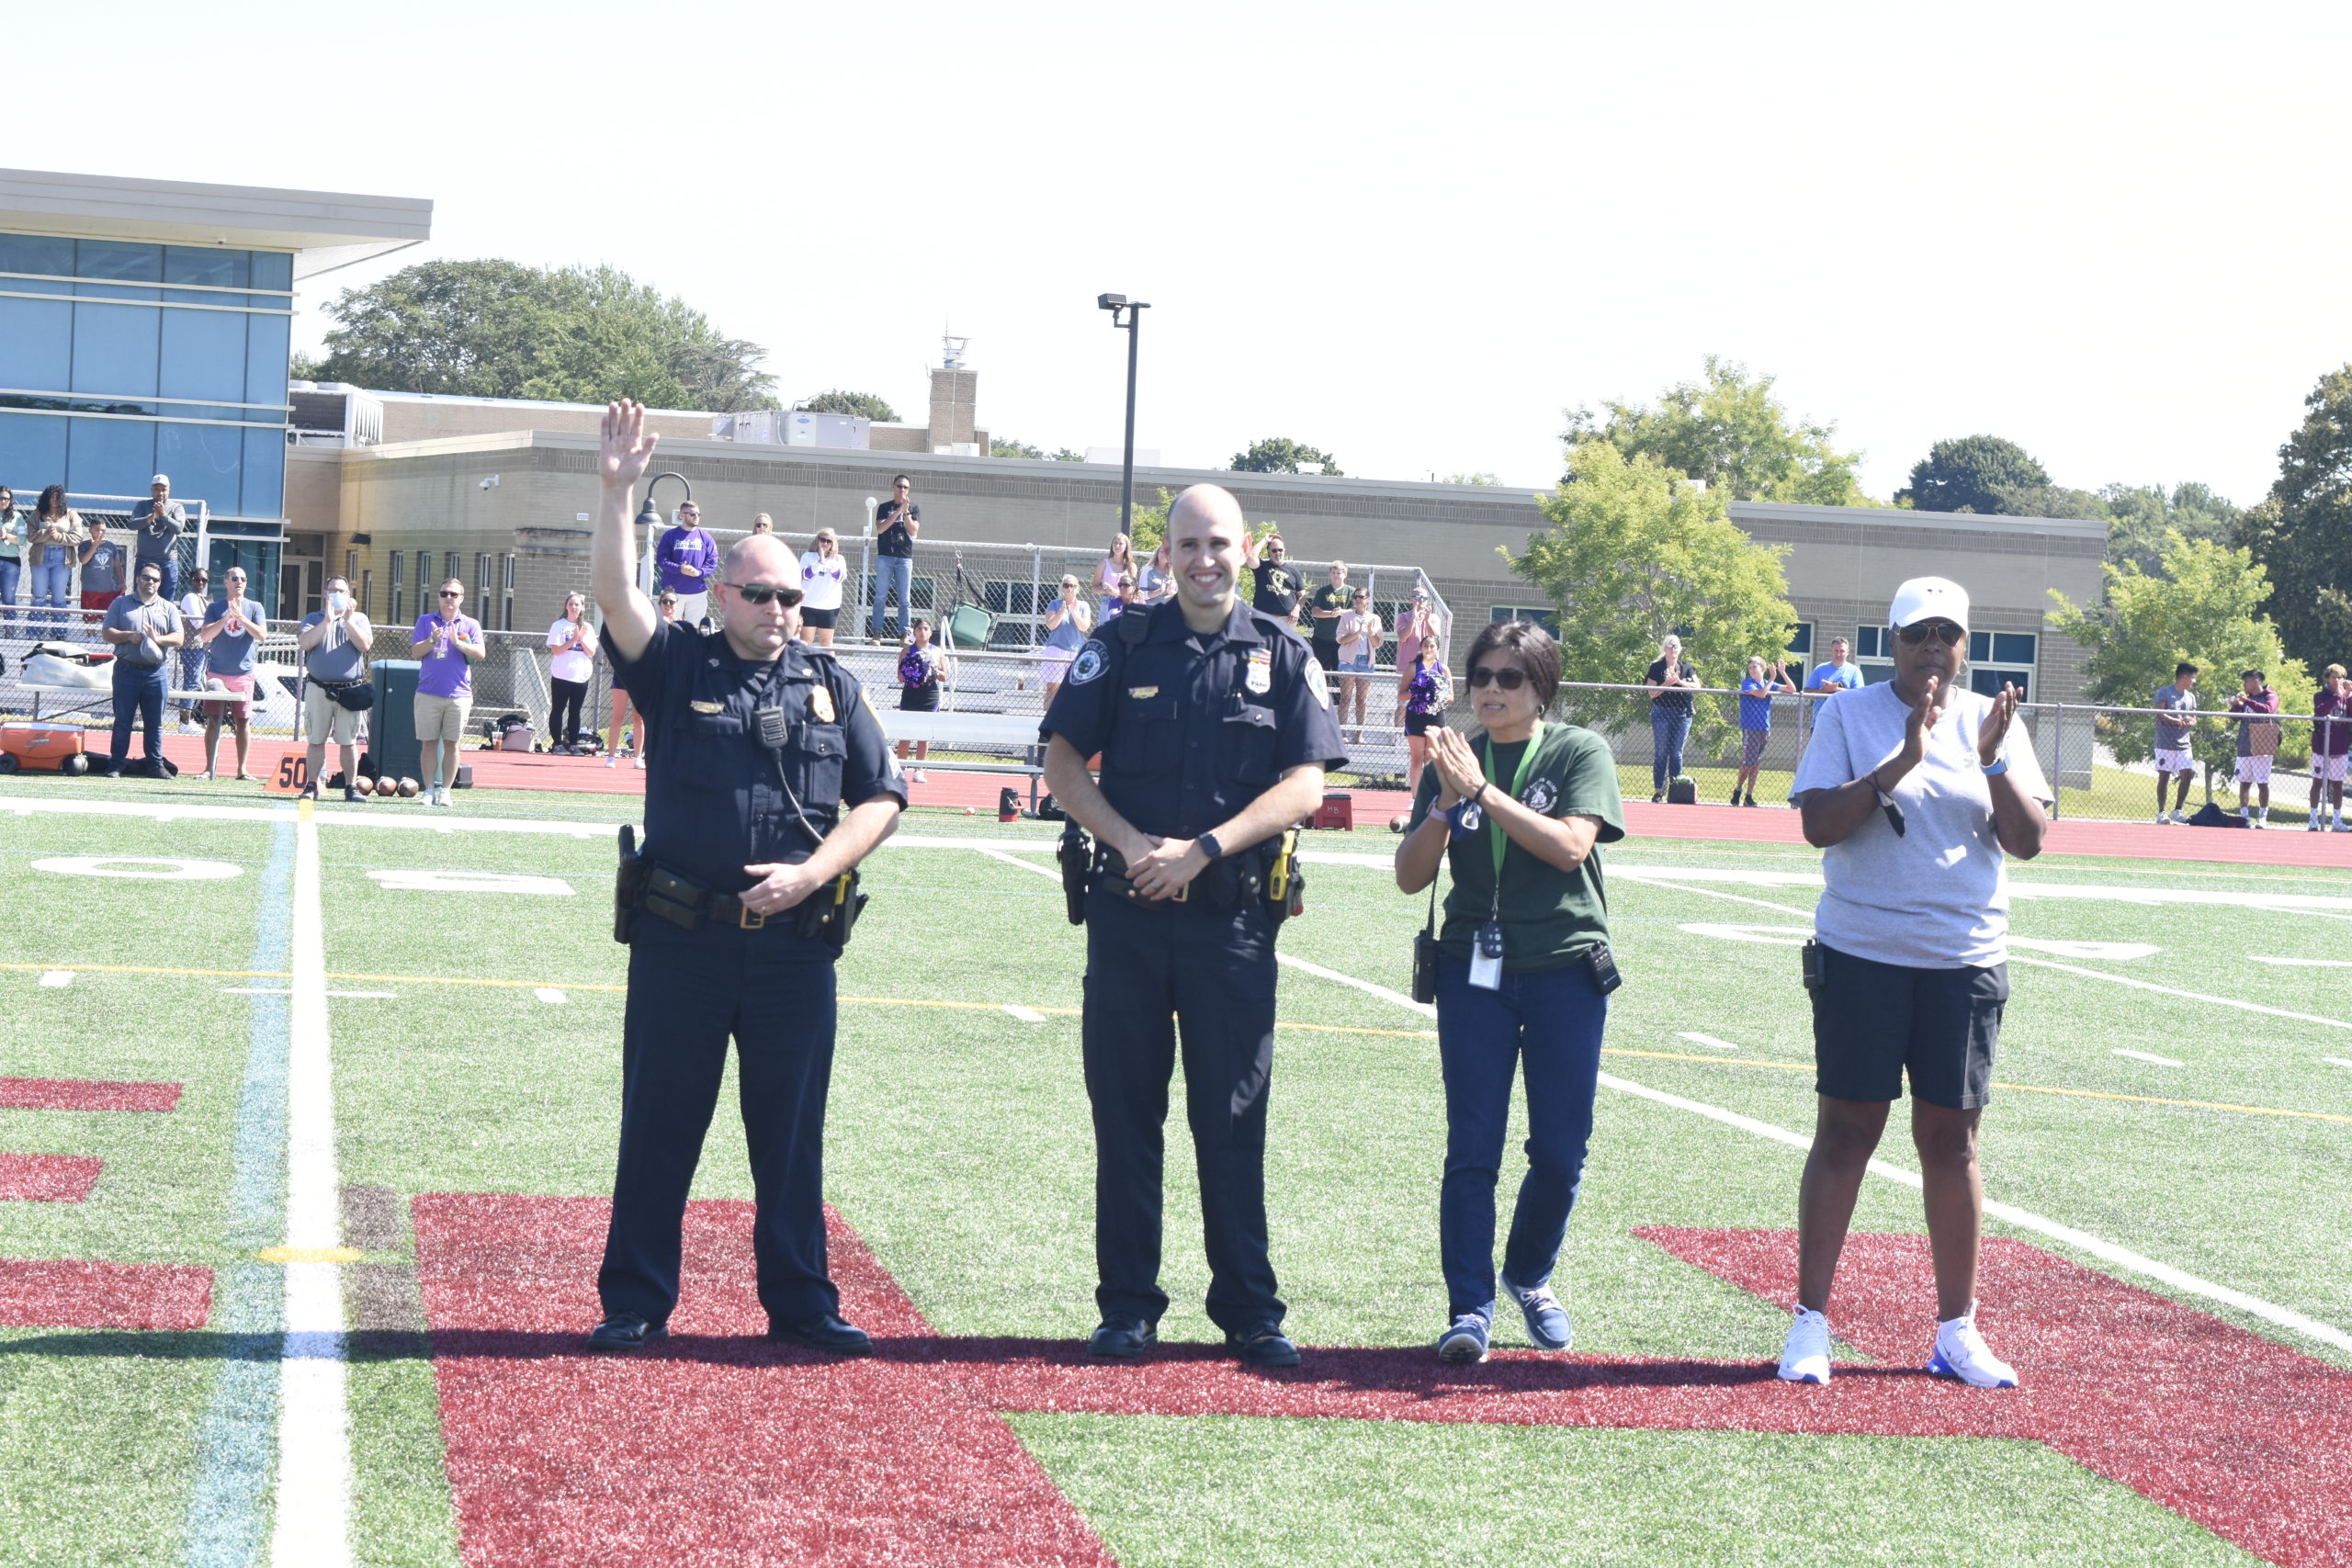 East Hampton Village Police Officer Matthew Morgan, left, East Hampton Town Police Officer Joseph Izzo and East Hampton Village Ambulance members Marcia Dias and Samone Johnson were honored prior to the East Hampton football game this past Saturday, September 11.